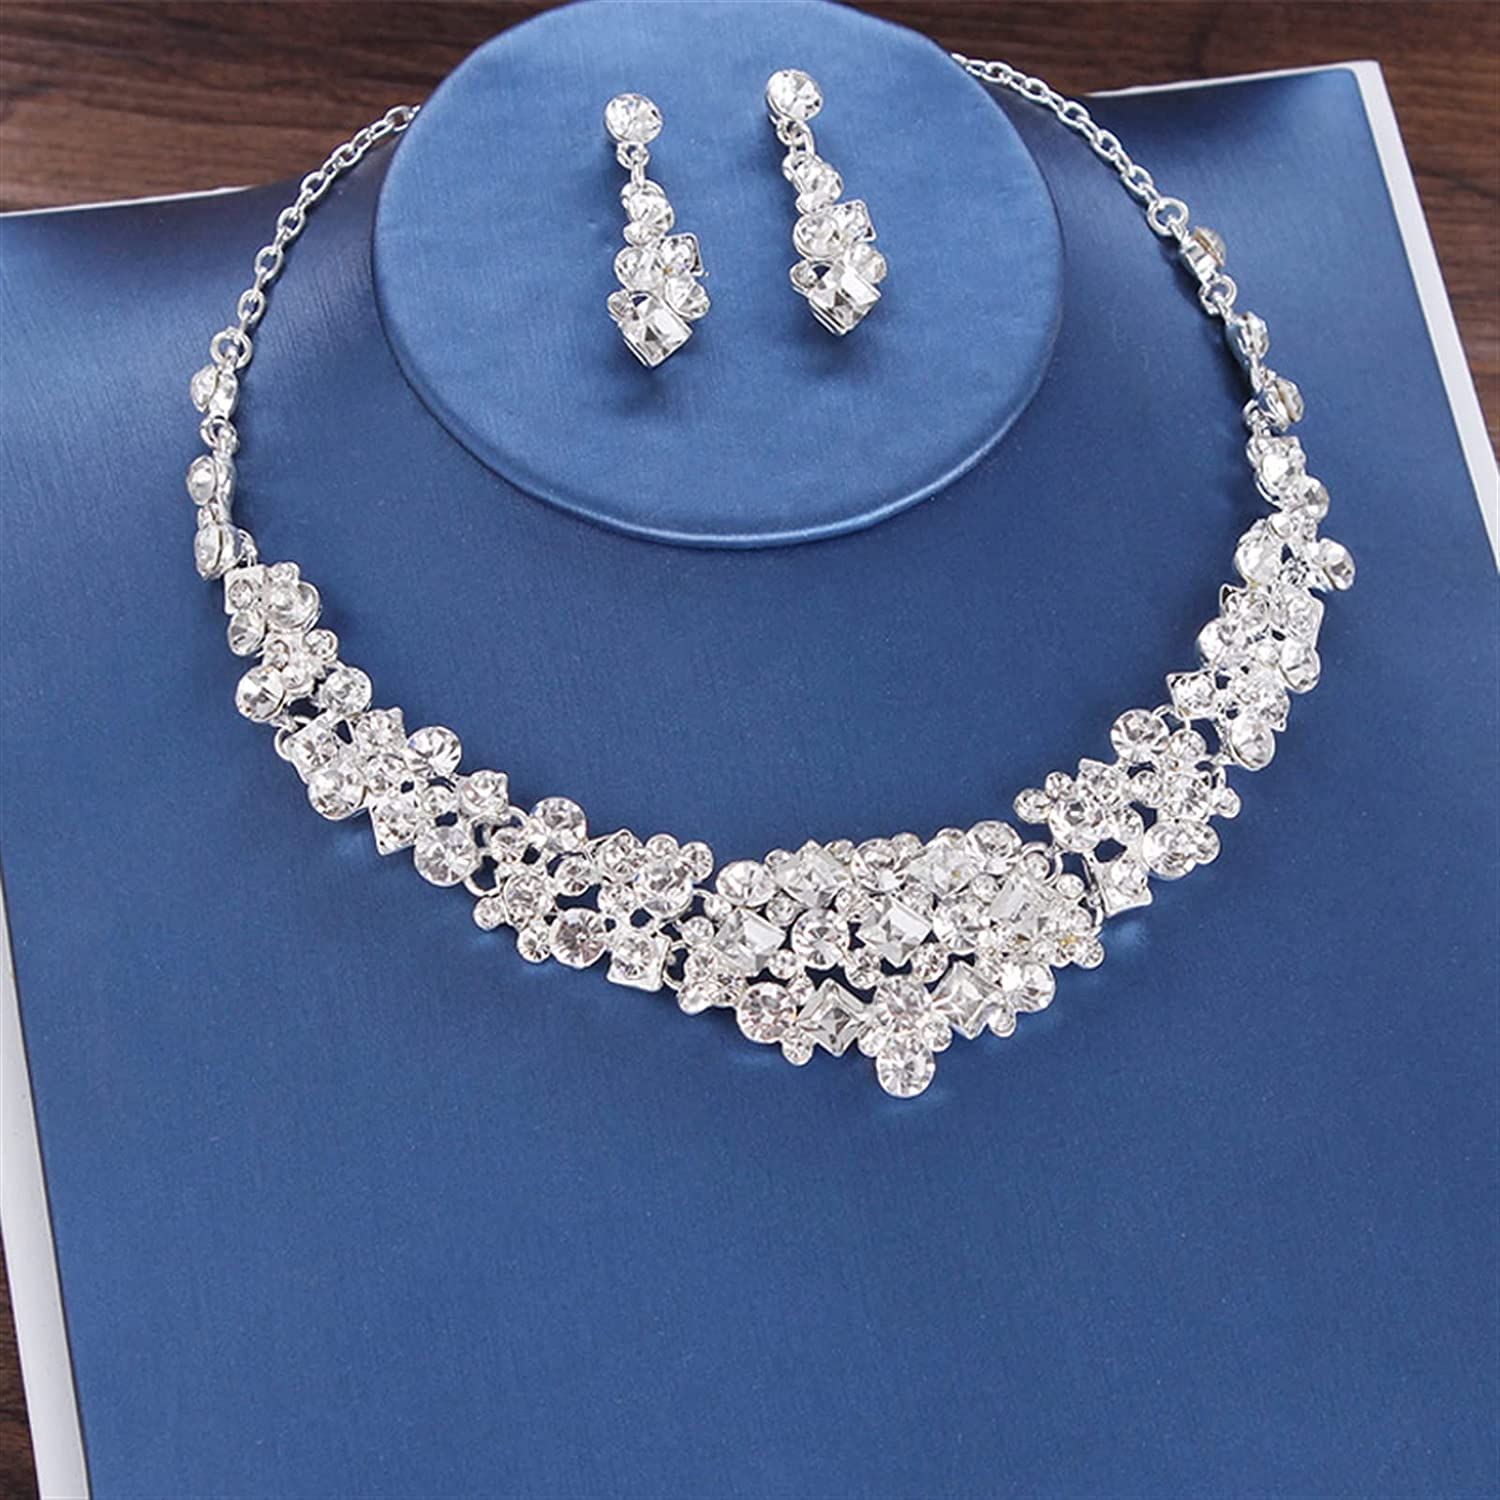 YUANBOO Baroque Luxury Crystal Beads Bridal Jewelry Set Rhinestone Crown Tiara Earrings Necklace Set Weddings African Beads Jewelry Sets (Metal Color : 2Pcs Jewelry Set)